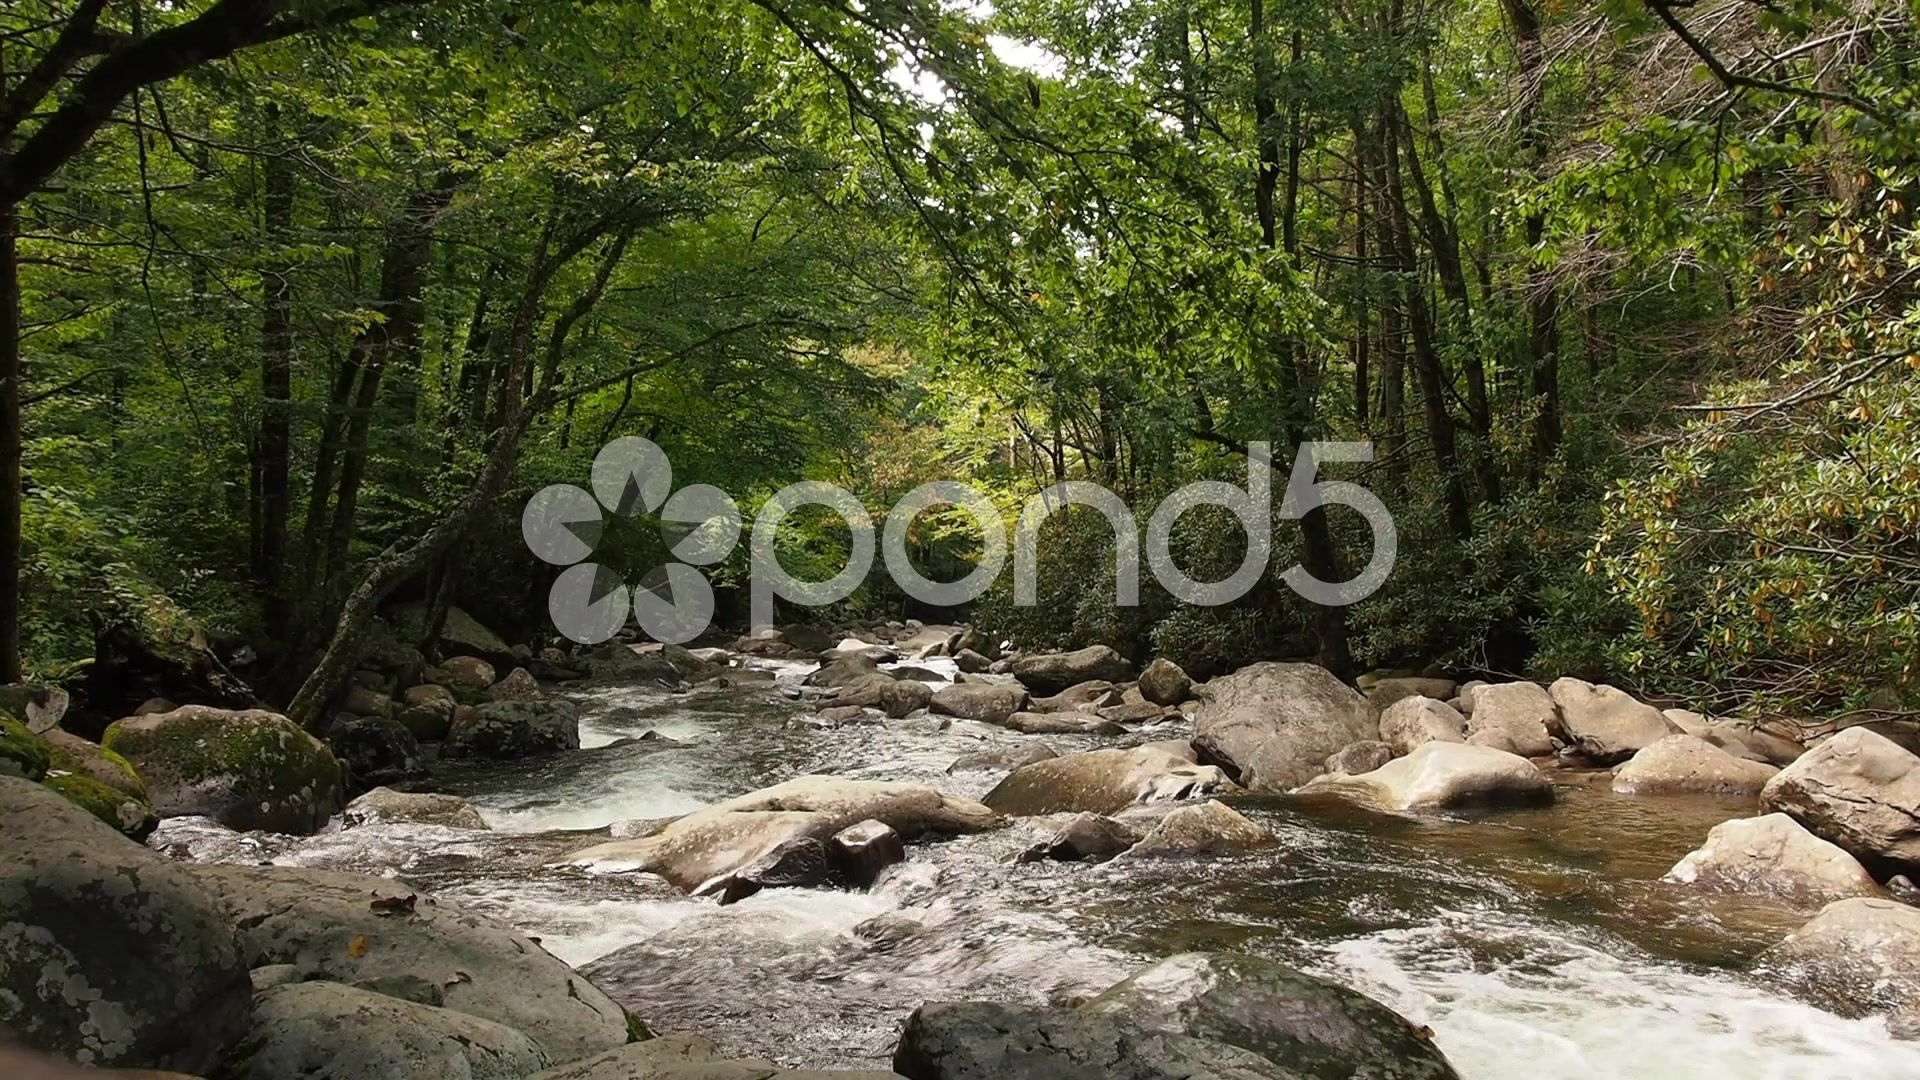 Forest Stream Stock Footage #AD ,#Stream#Forest#Stock#Footage